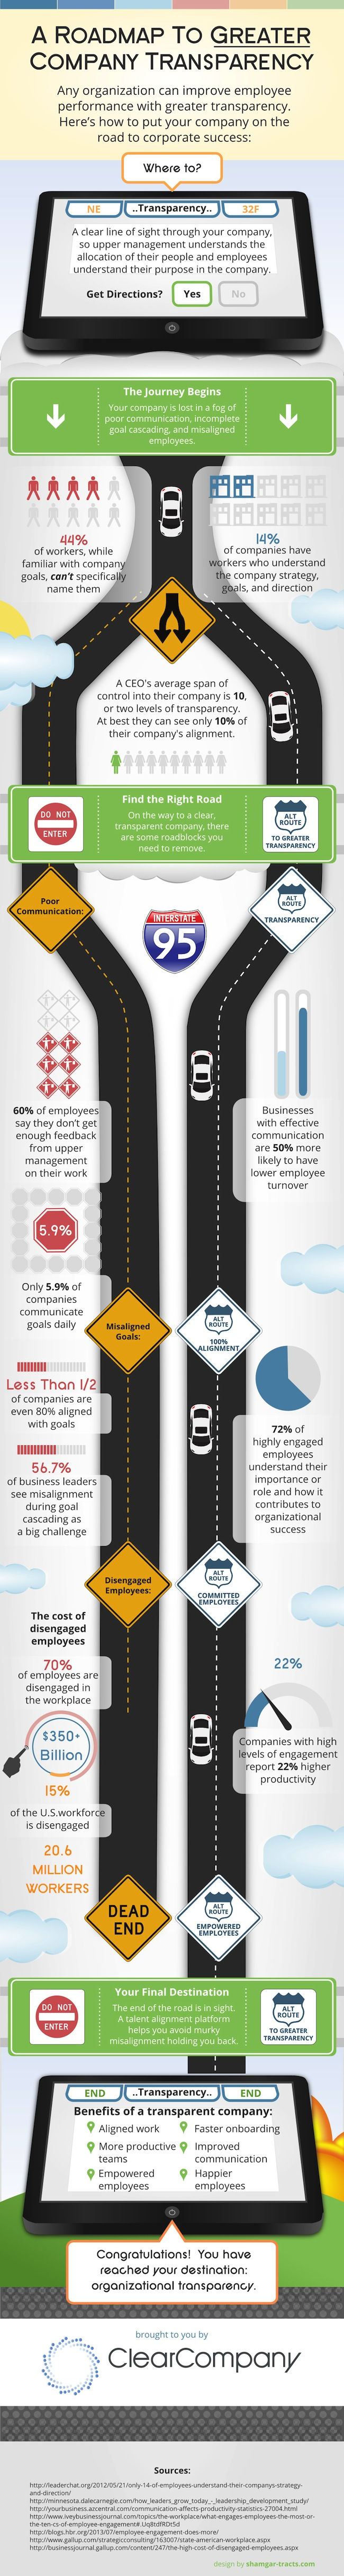 A Roadmap To Greater Company Transparency - Infographic by ClearCompany